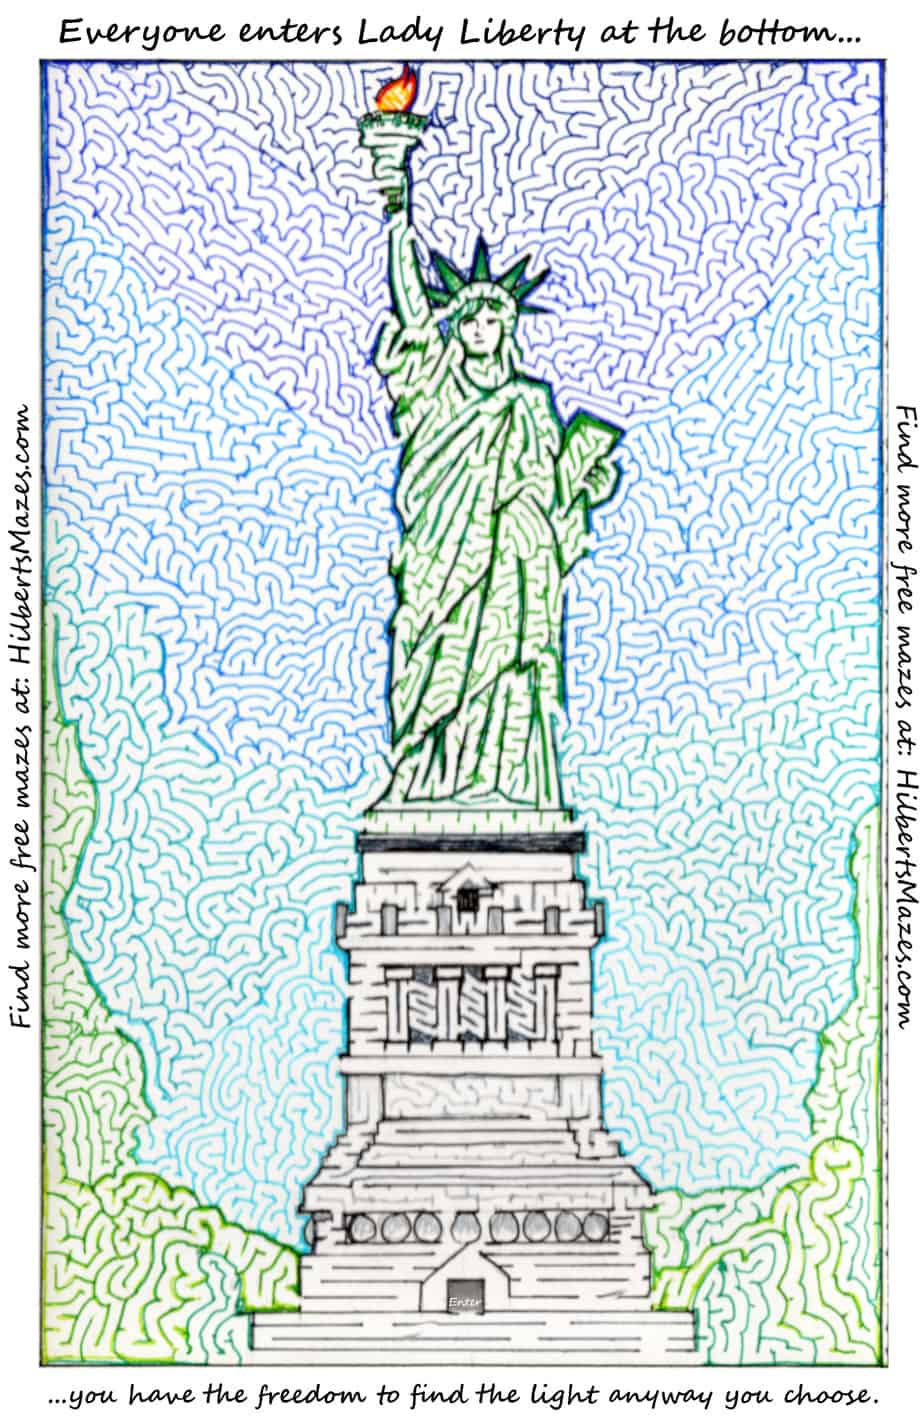 Free Printable Hand Drawn Statue of Liberty Maze. Easily downloadable and printable PDF format. Great Mazes for both kids & adults very challenging but fun.